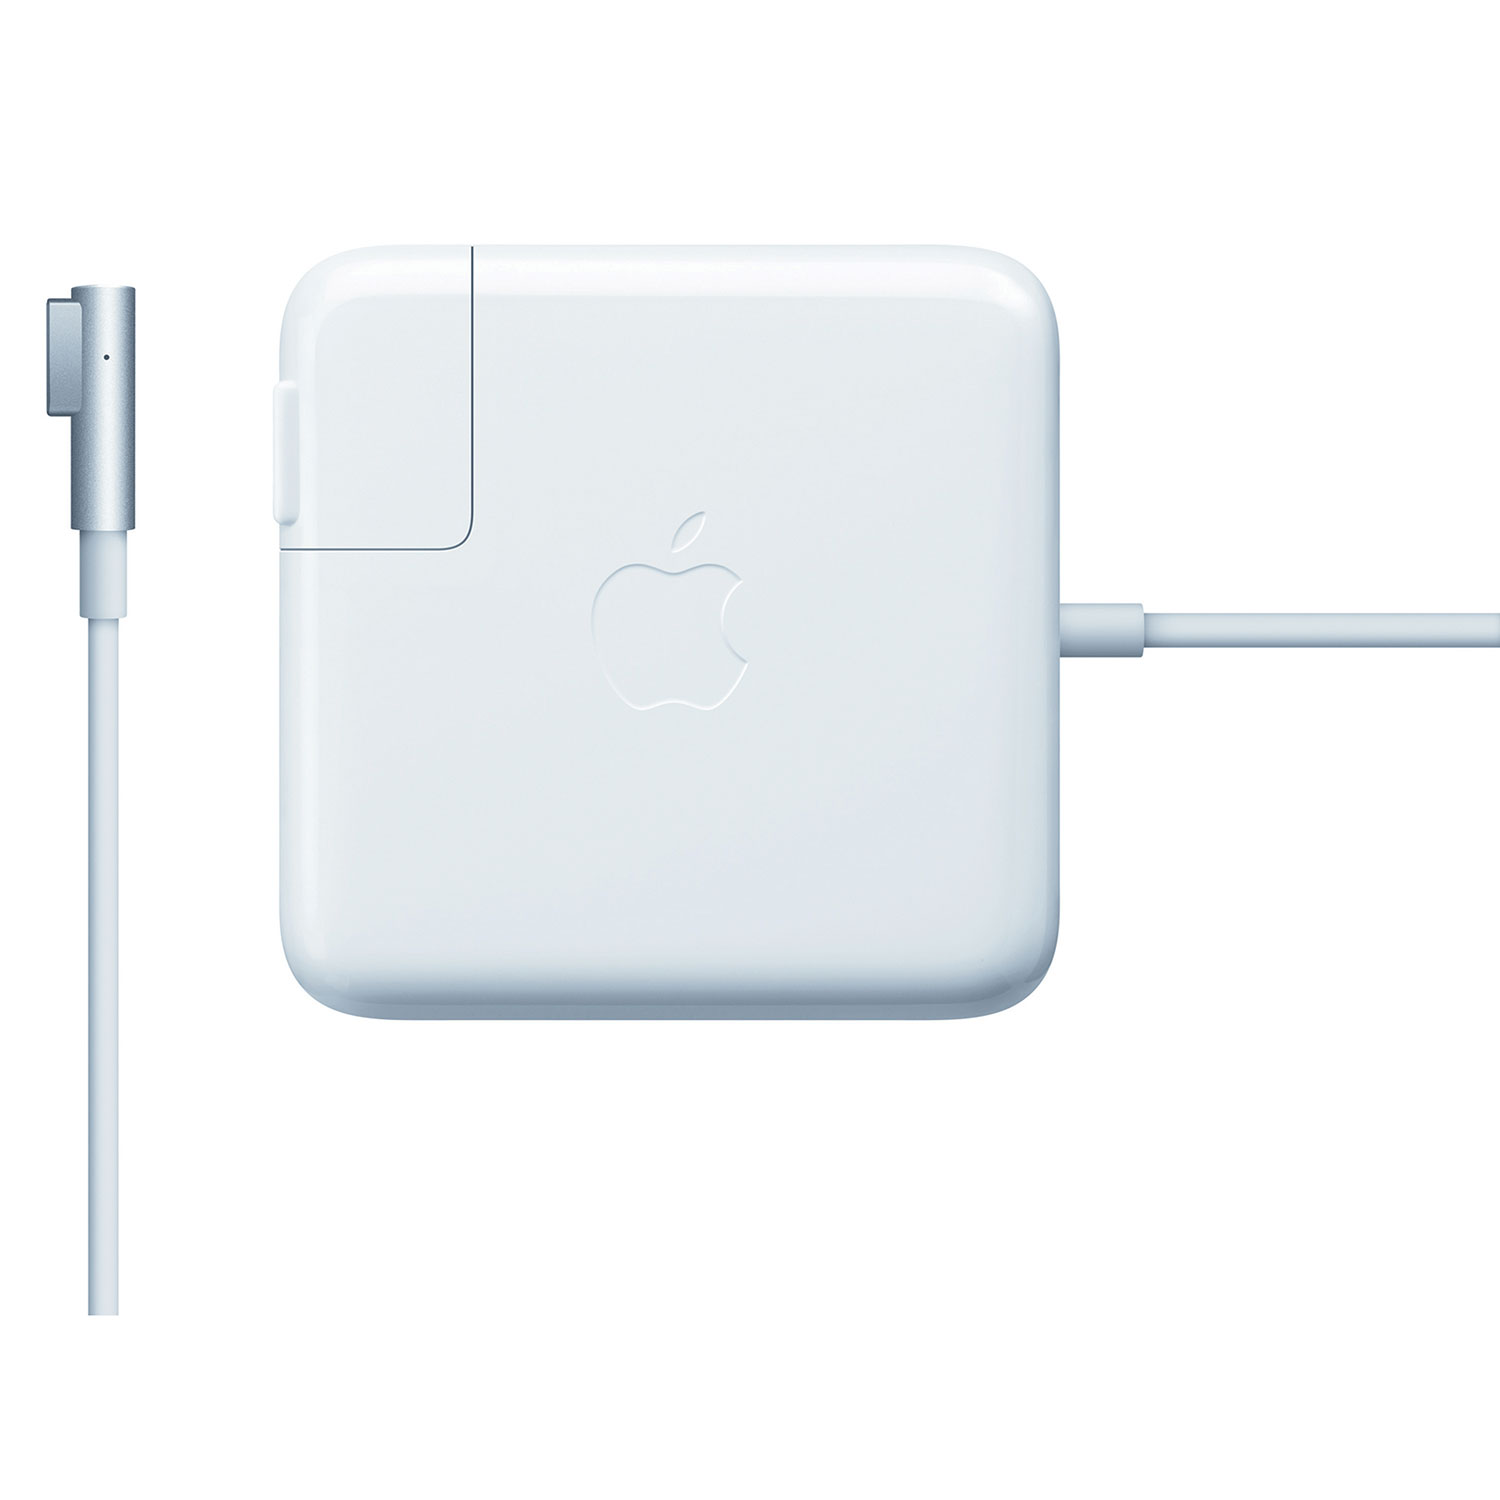 apple 85w magsafe power adapter. apple 85w magsafe power adapter (mc556ll/b) : laptop batteries \u0026 - best buy canada 85w magsafe